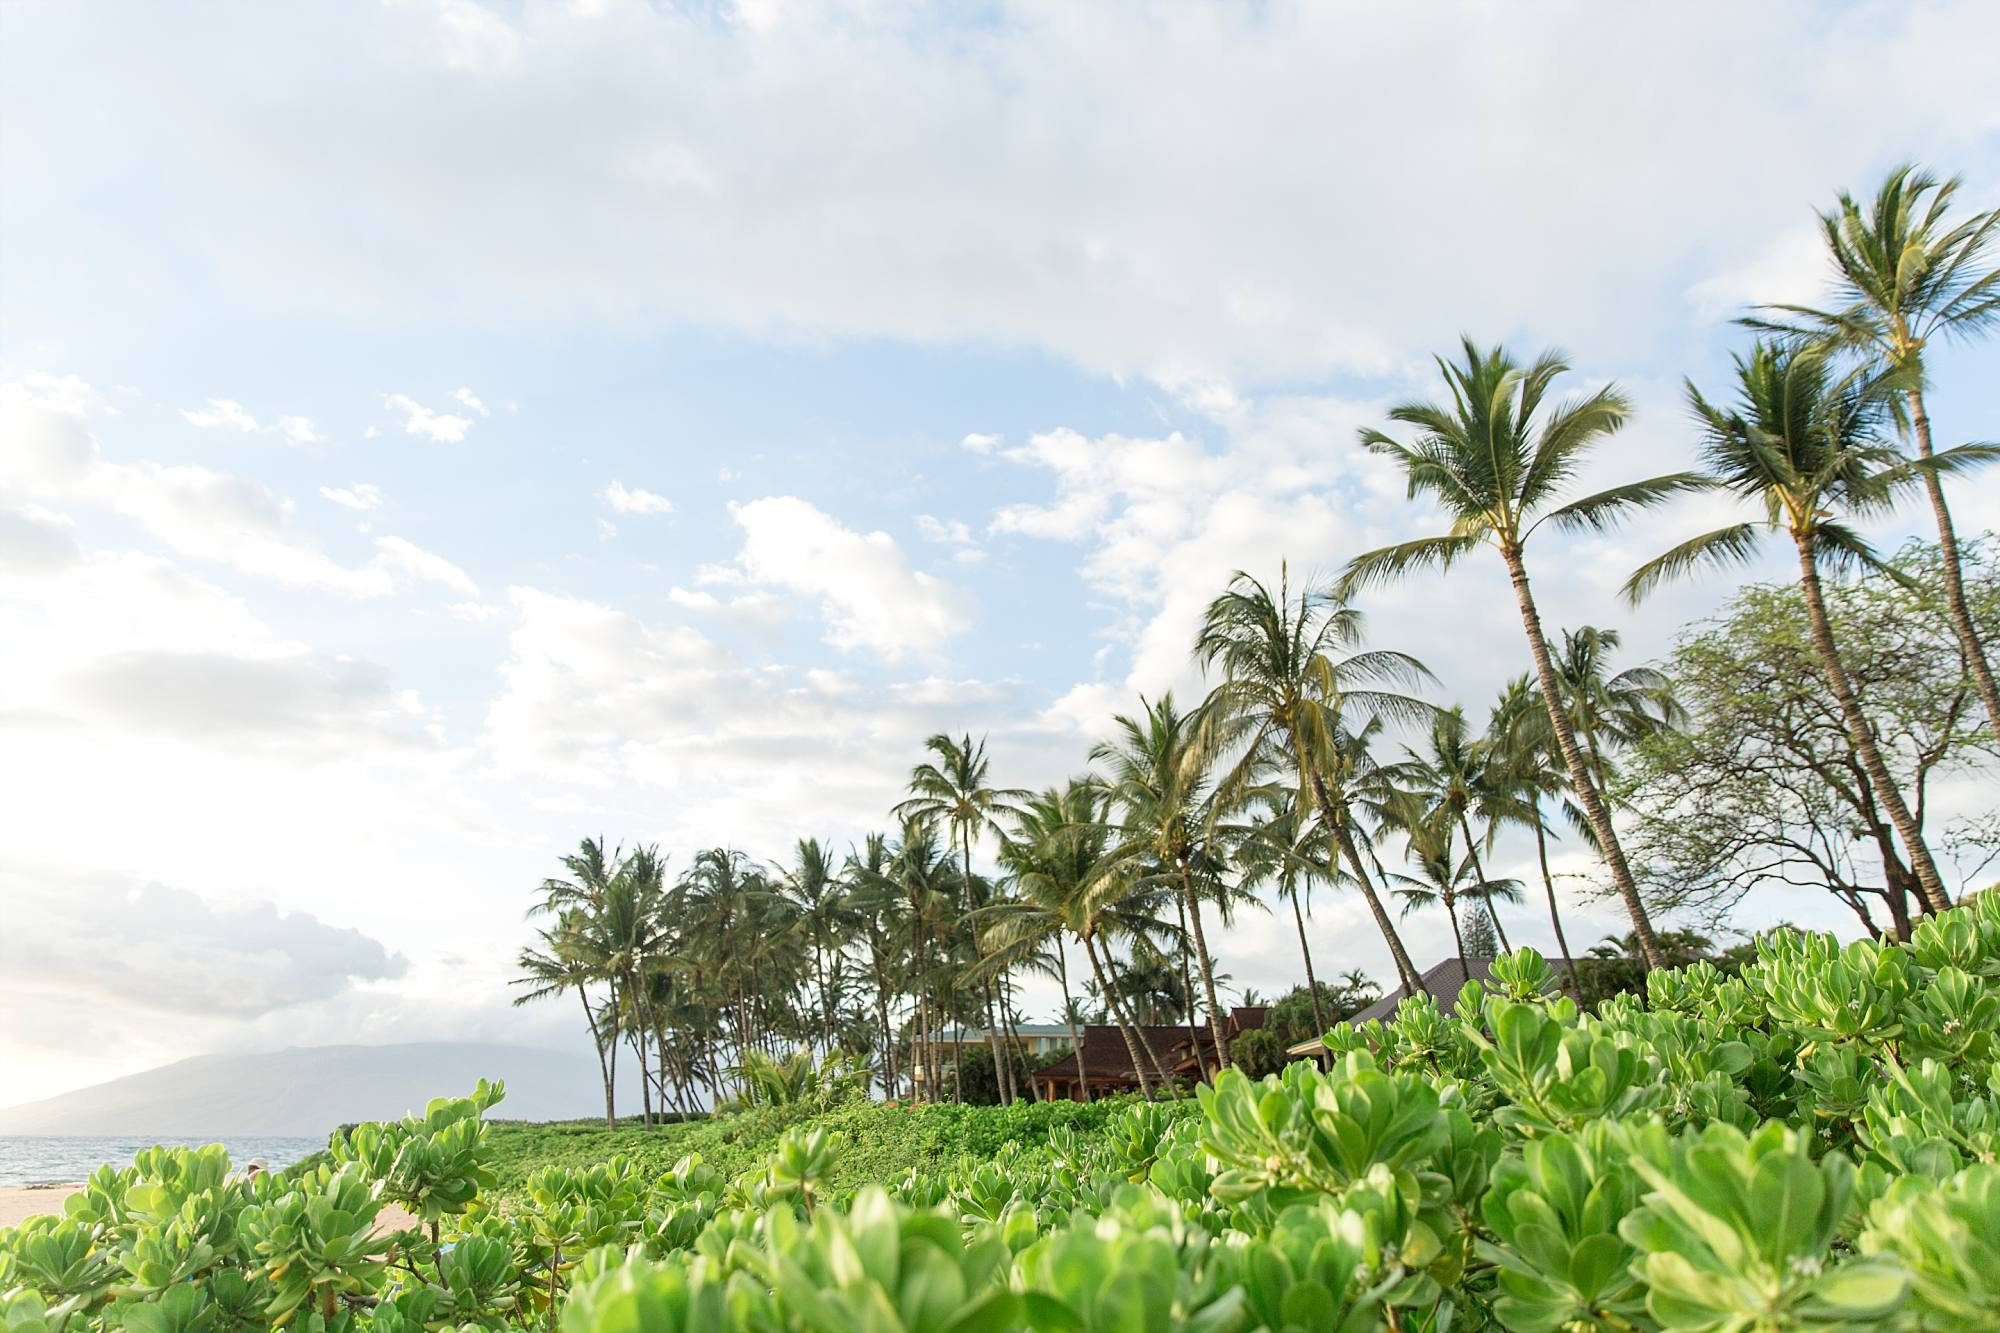 gorgeous Maui greenery and palm trees and blue skies with clouds